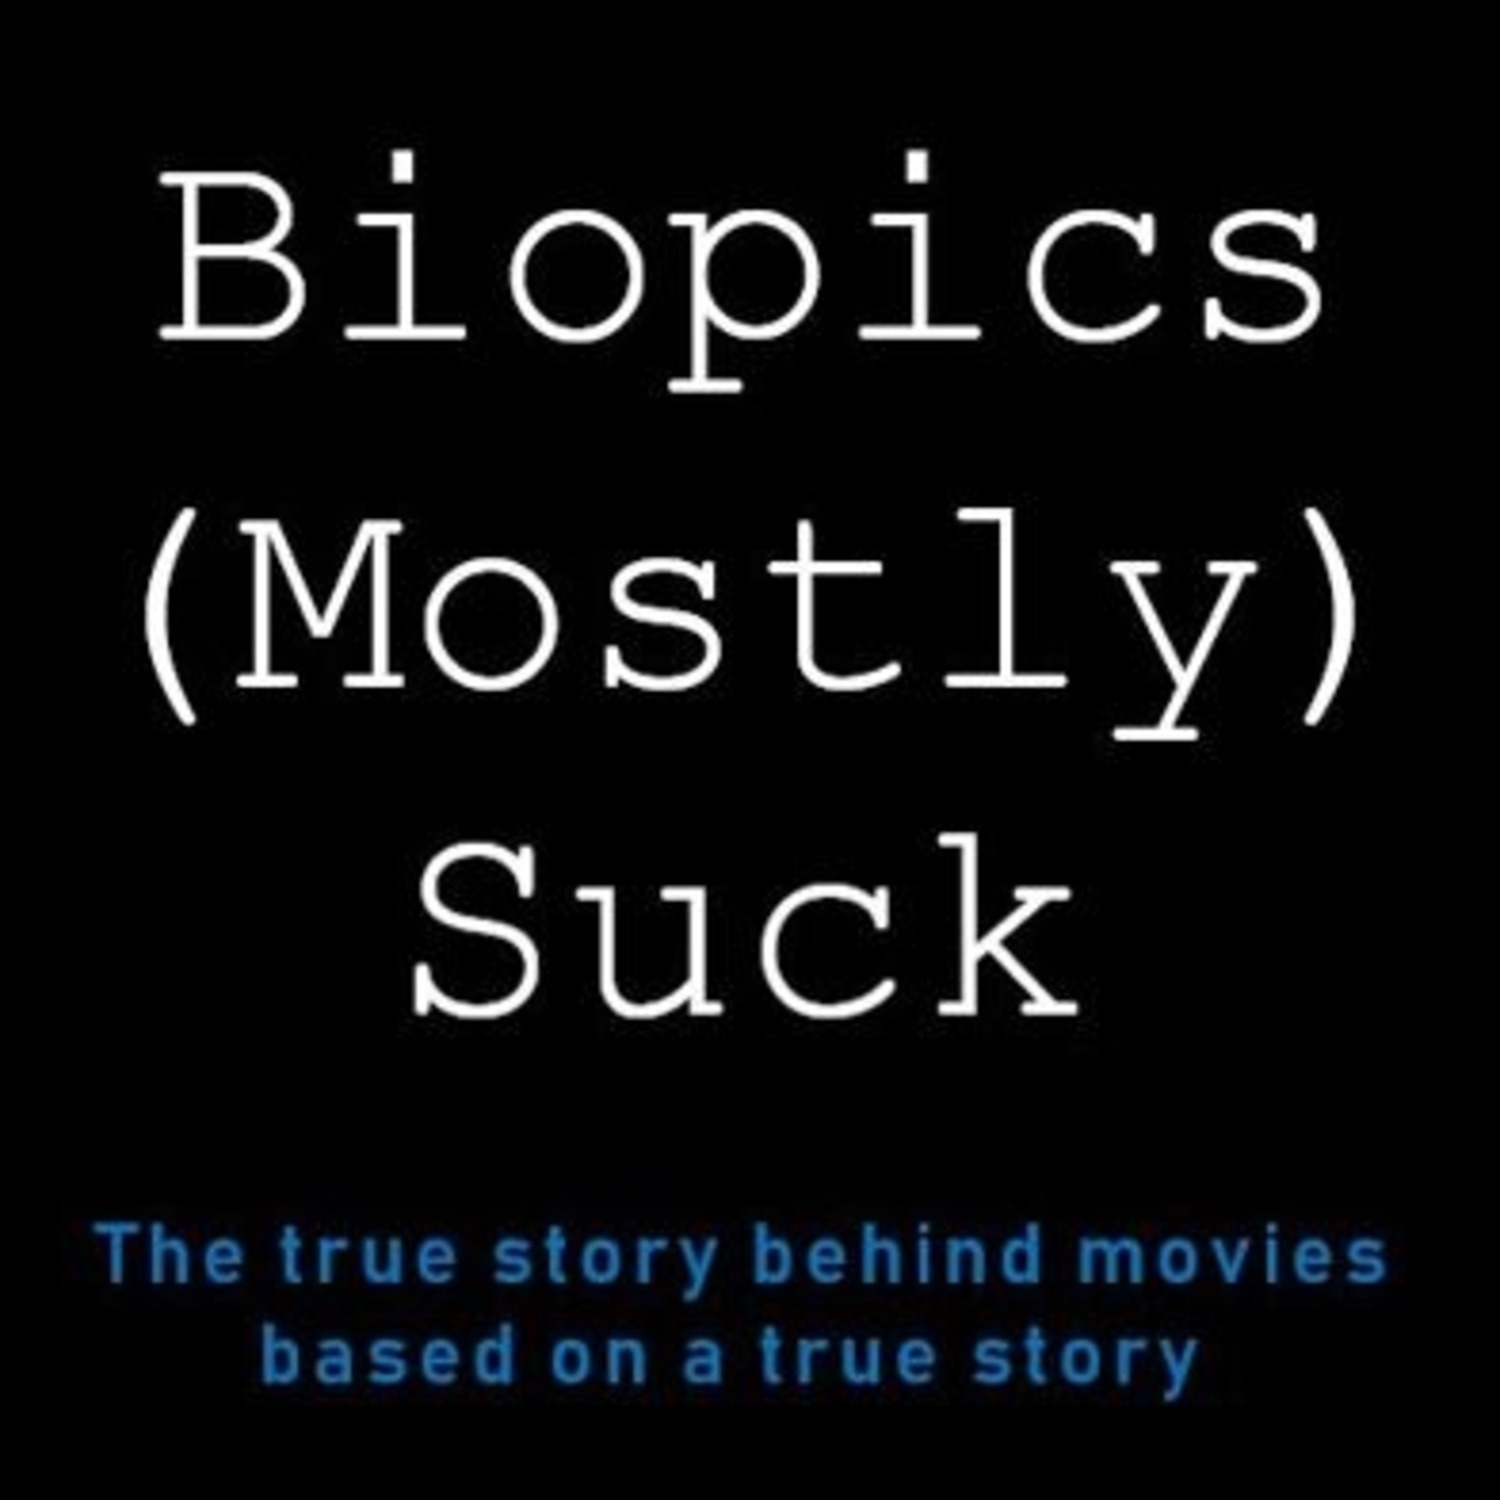 Biopics (Mostly) Suck - A Coal Miner's Daughter - Episode 12